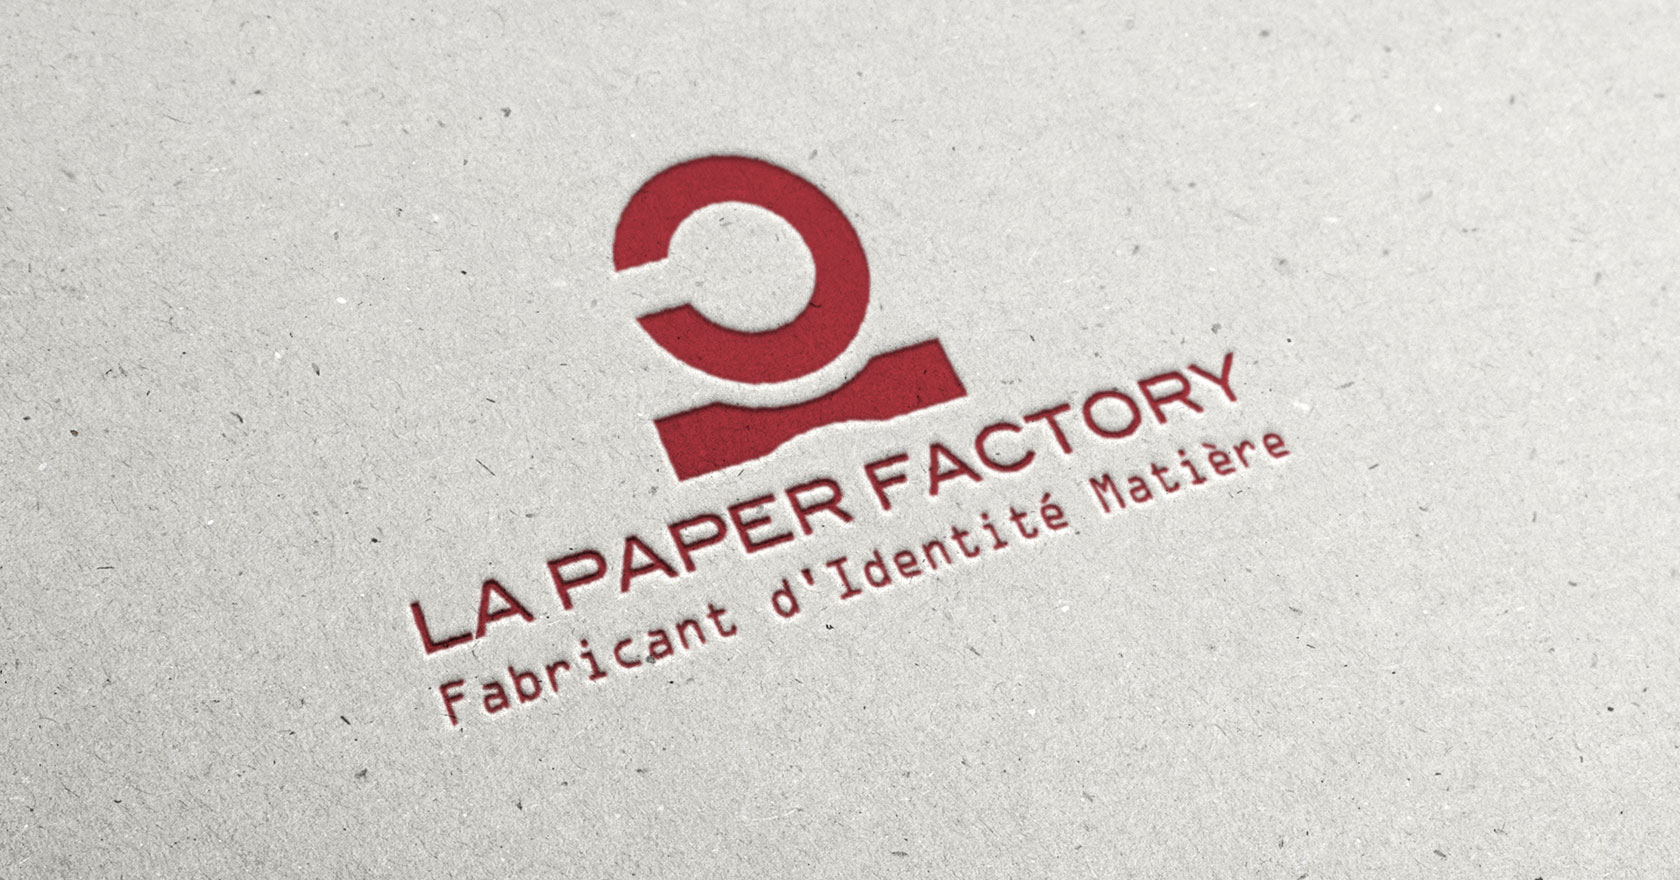 Hop-hope-cas-Paper-factory-positionnement